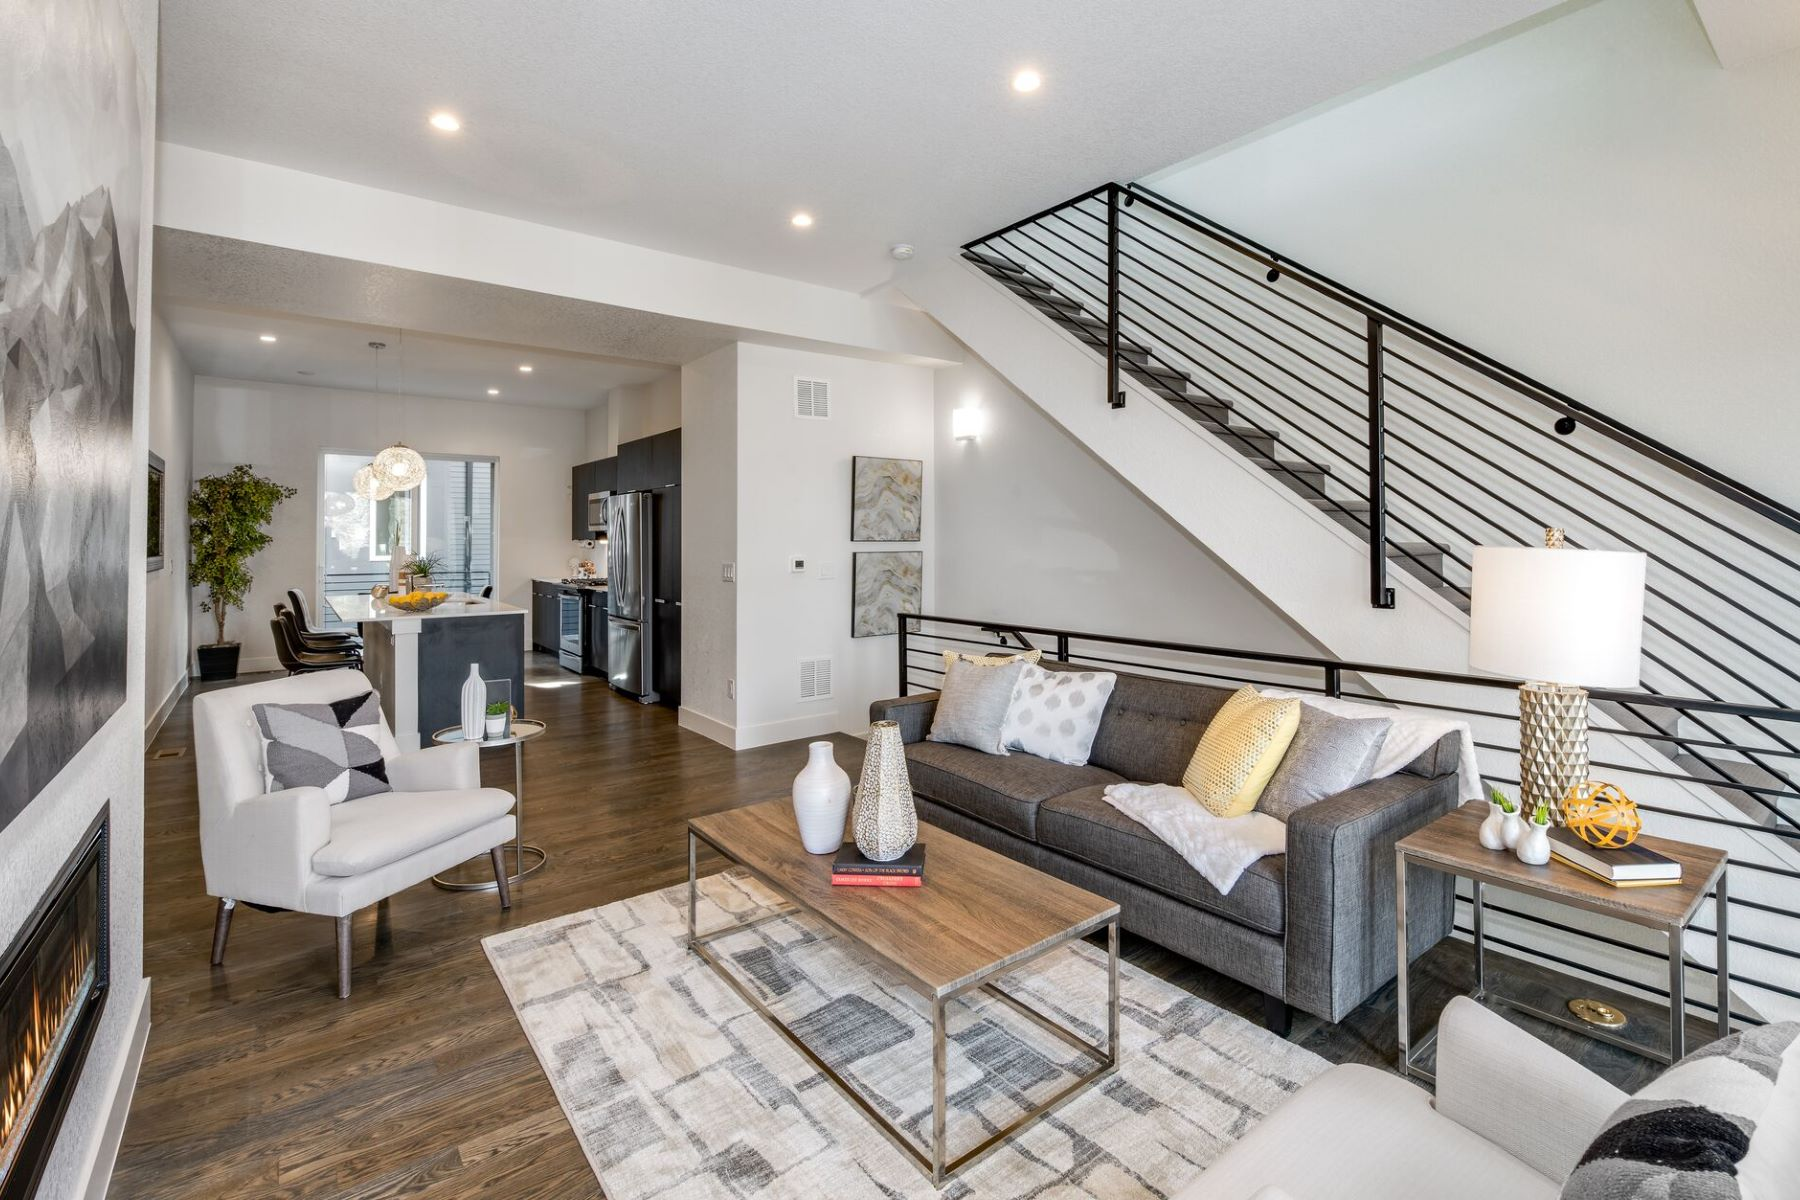 Single Family Home for Active at Hottest New Addition to Sunnyside Neighborhood 2416 W 44th Avenue, Denver, Colorado 80211 United States